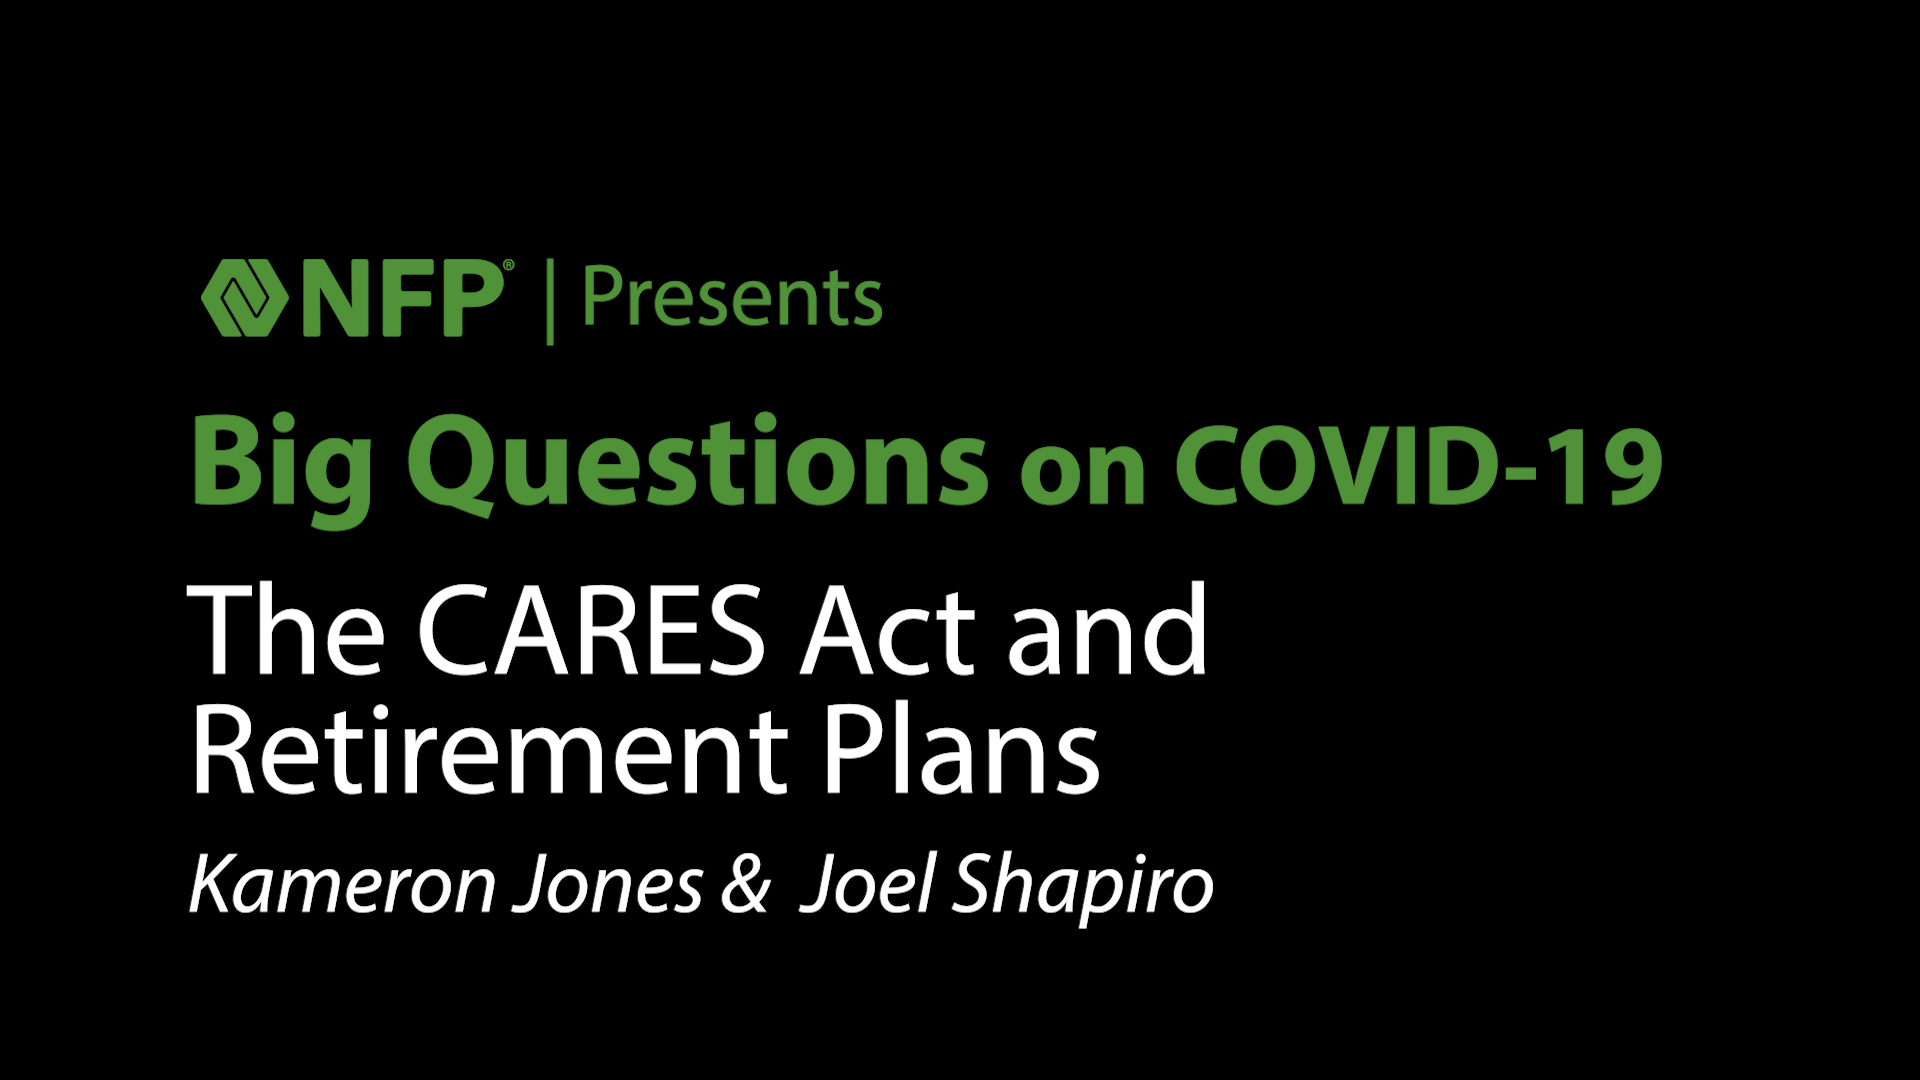 thumbnail image of Big Questions on COVID-19 - The CARES Act and Retirement Plans with Kameron Jones and Joel Shapiro